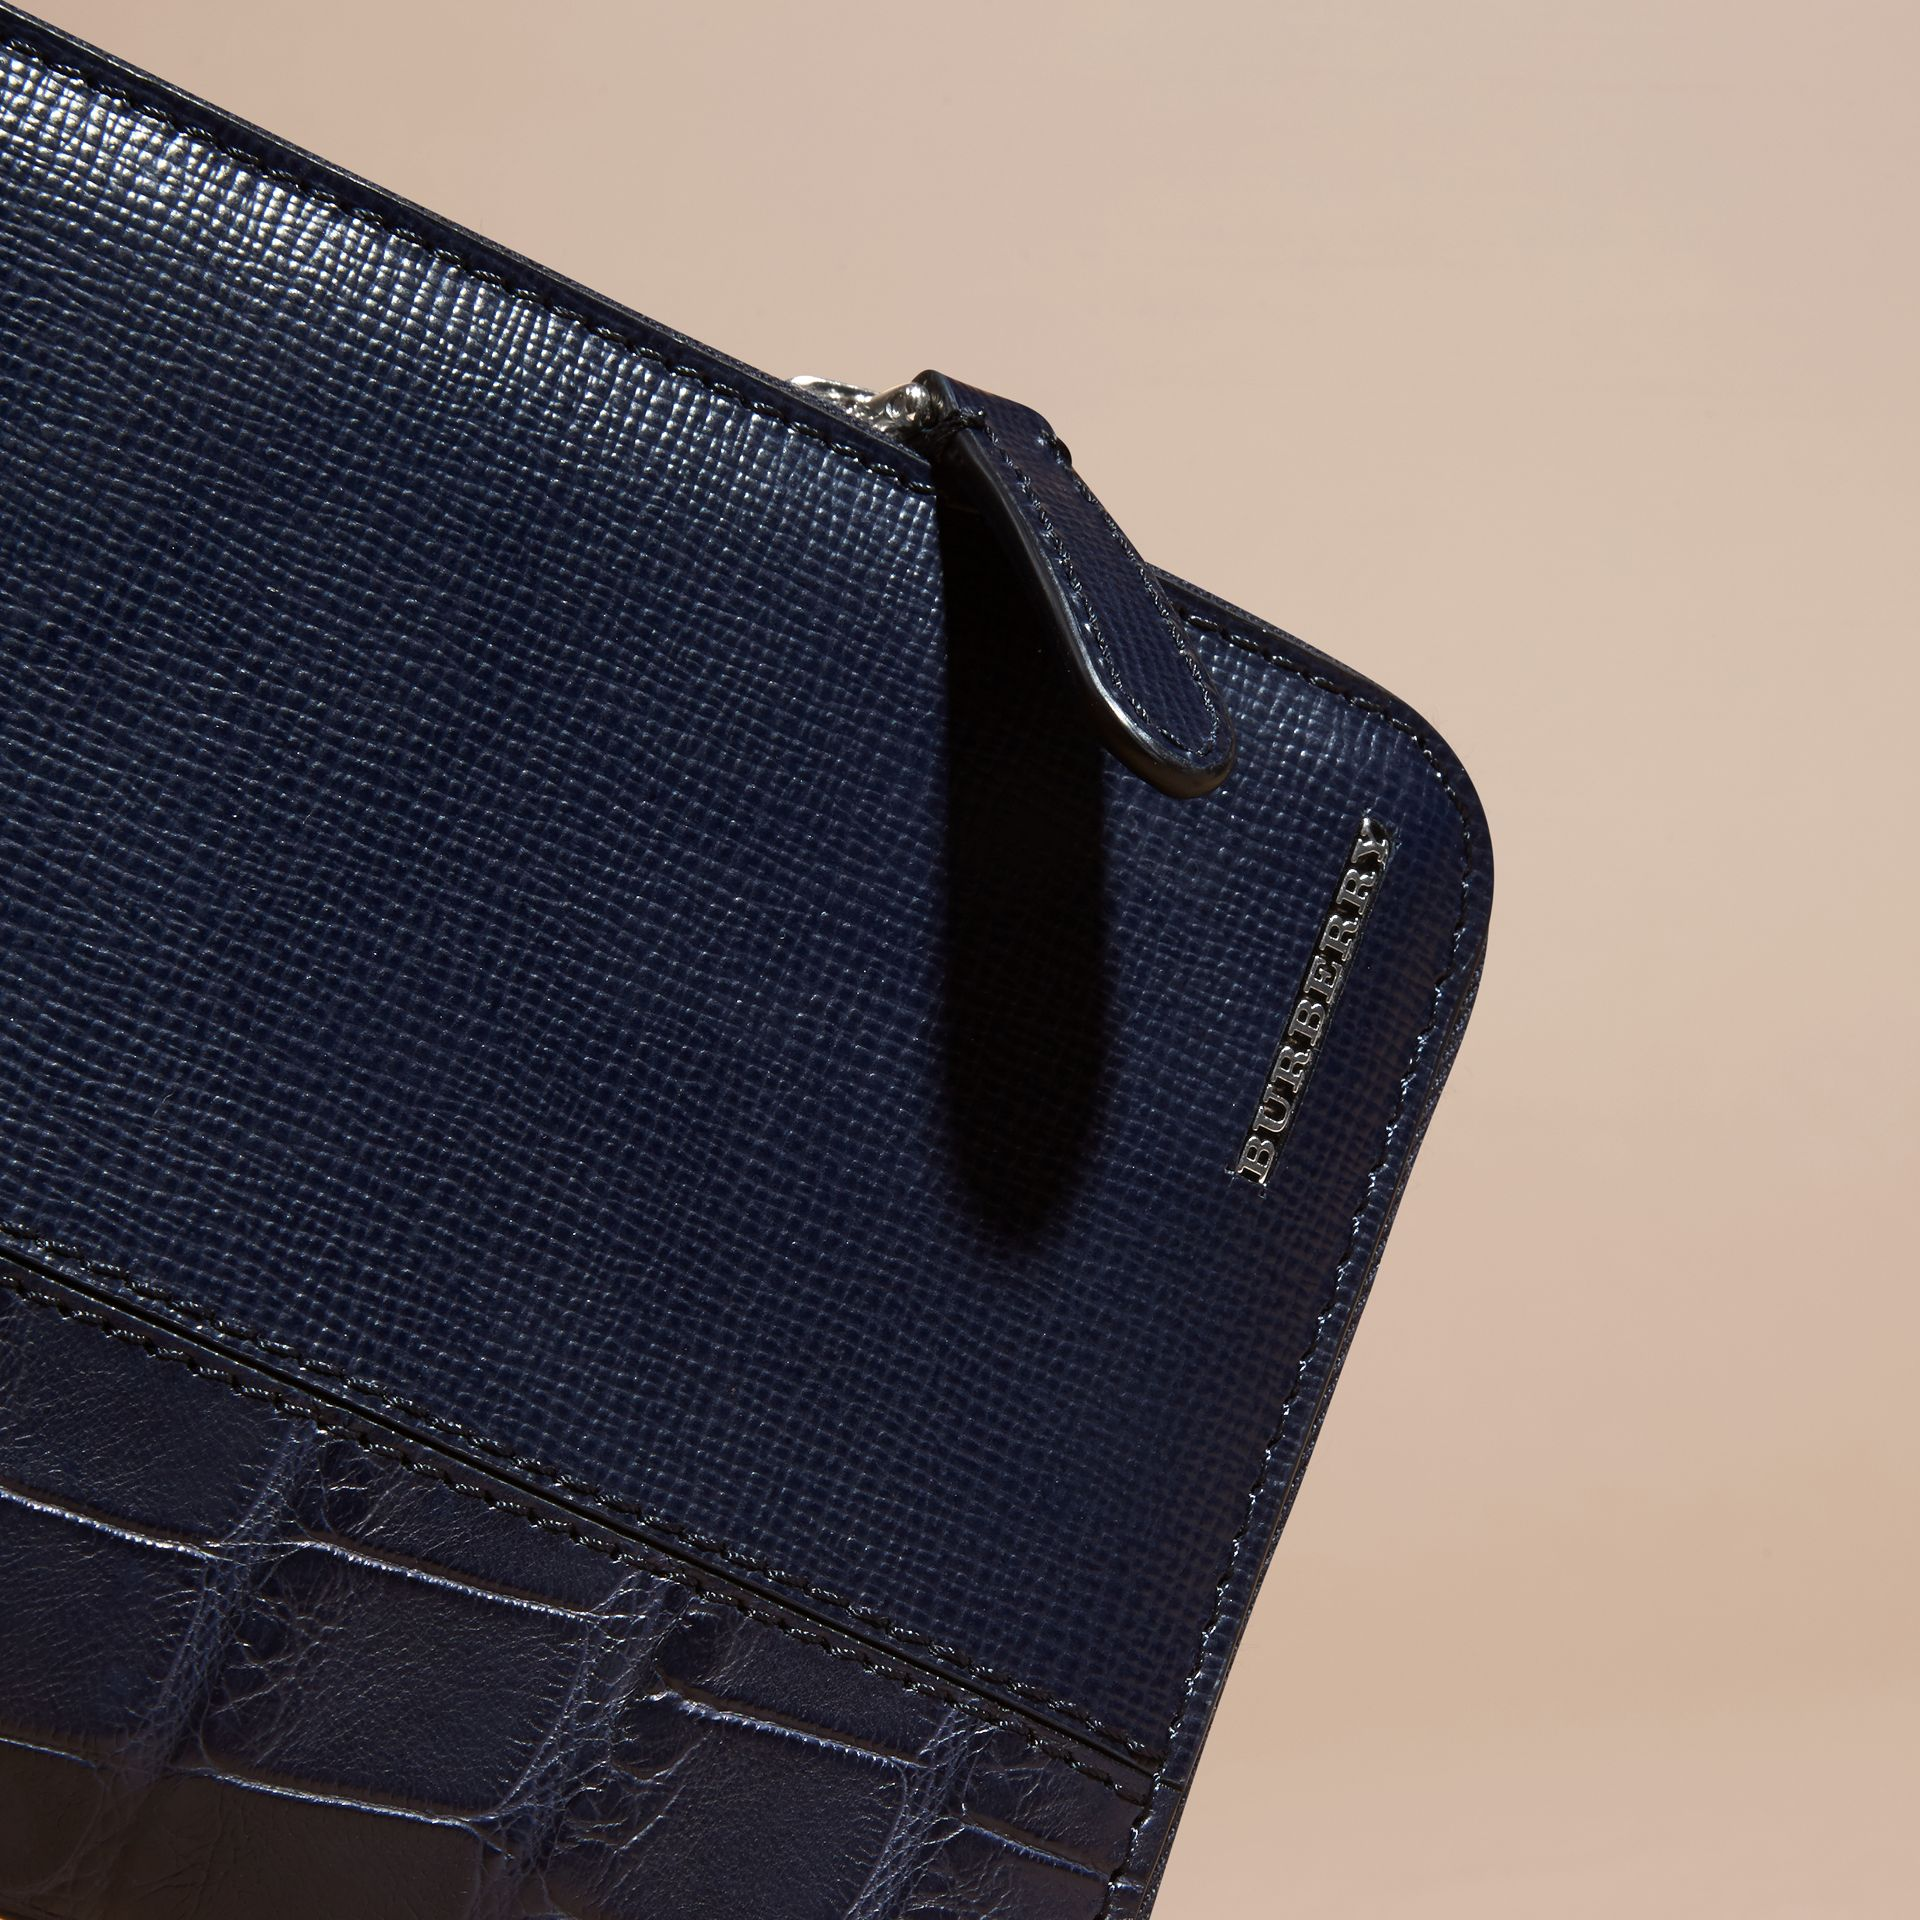 London Leather and Alligator Ziparound Wallet in Dark Navy - Men | Burberry Australia - gallery image 1